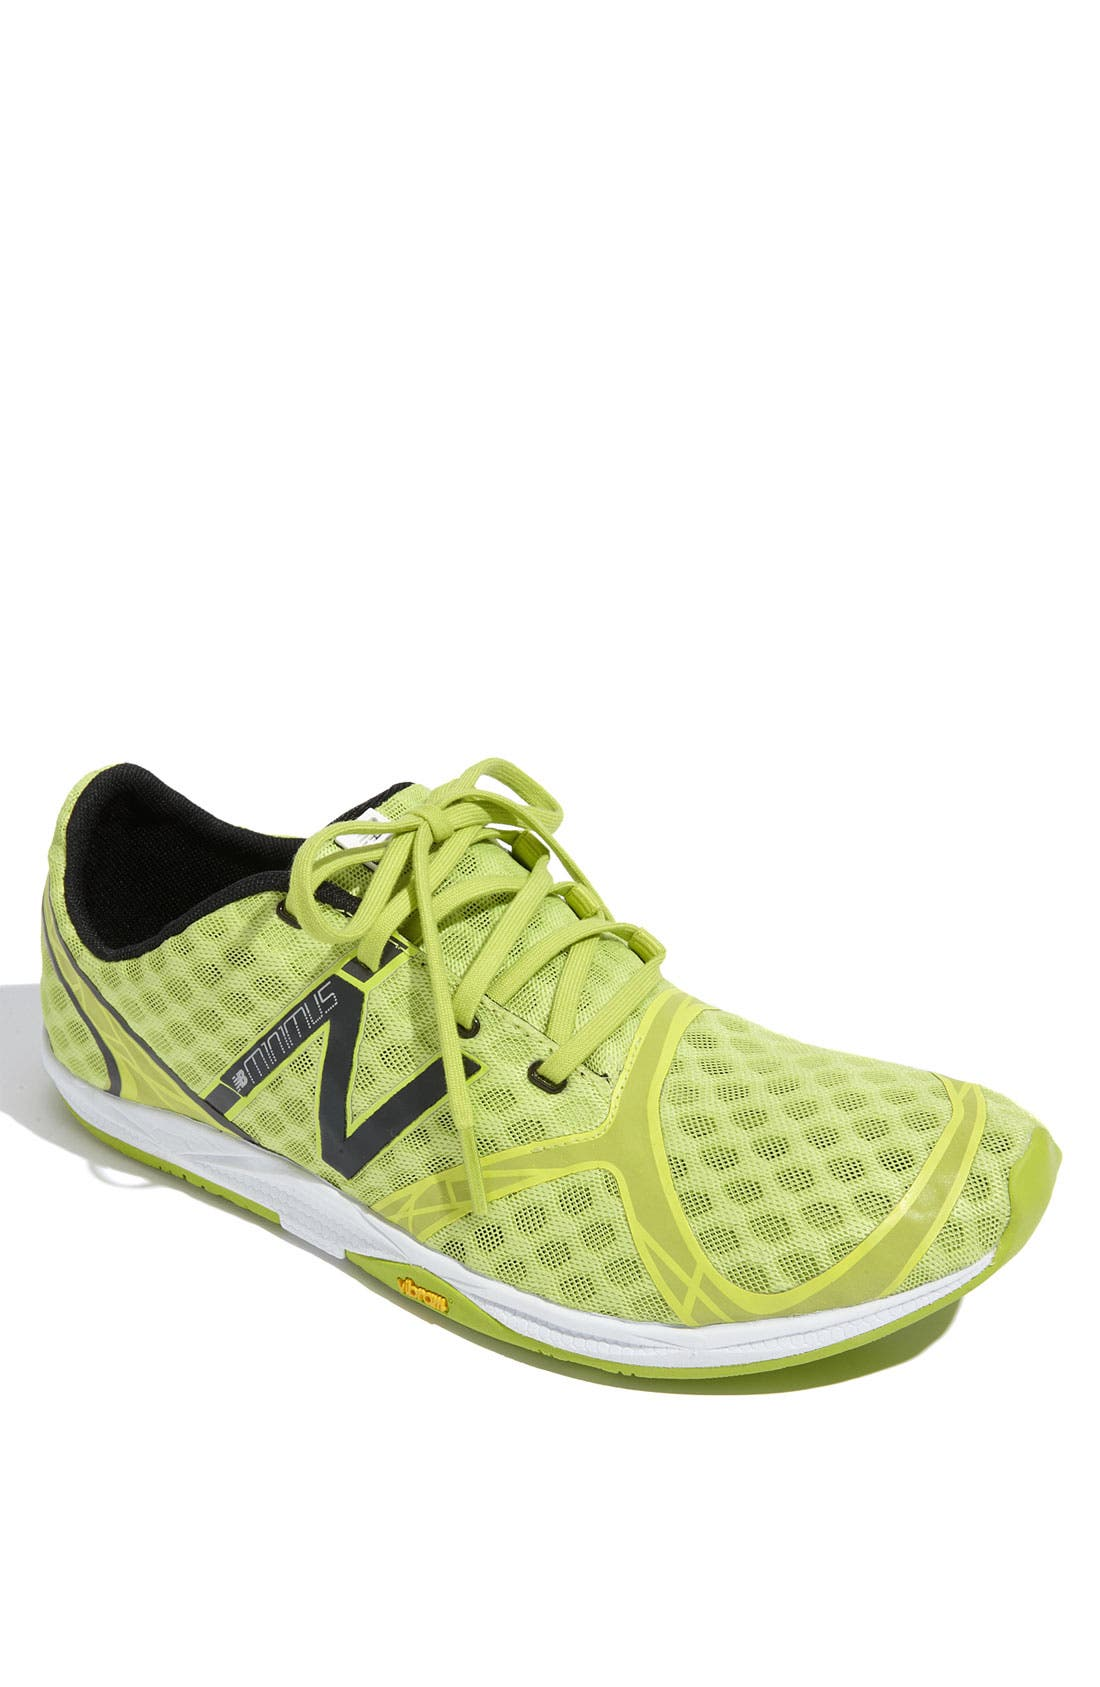 Alternate Image 1 Selected - New Balance 'Minimus' Running Shoe (Men) (Online Only)